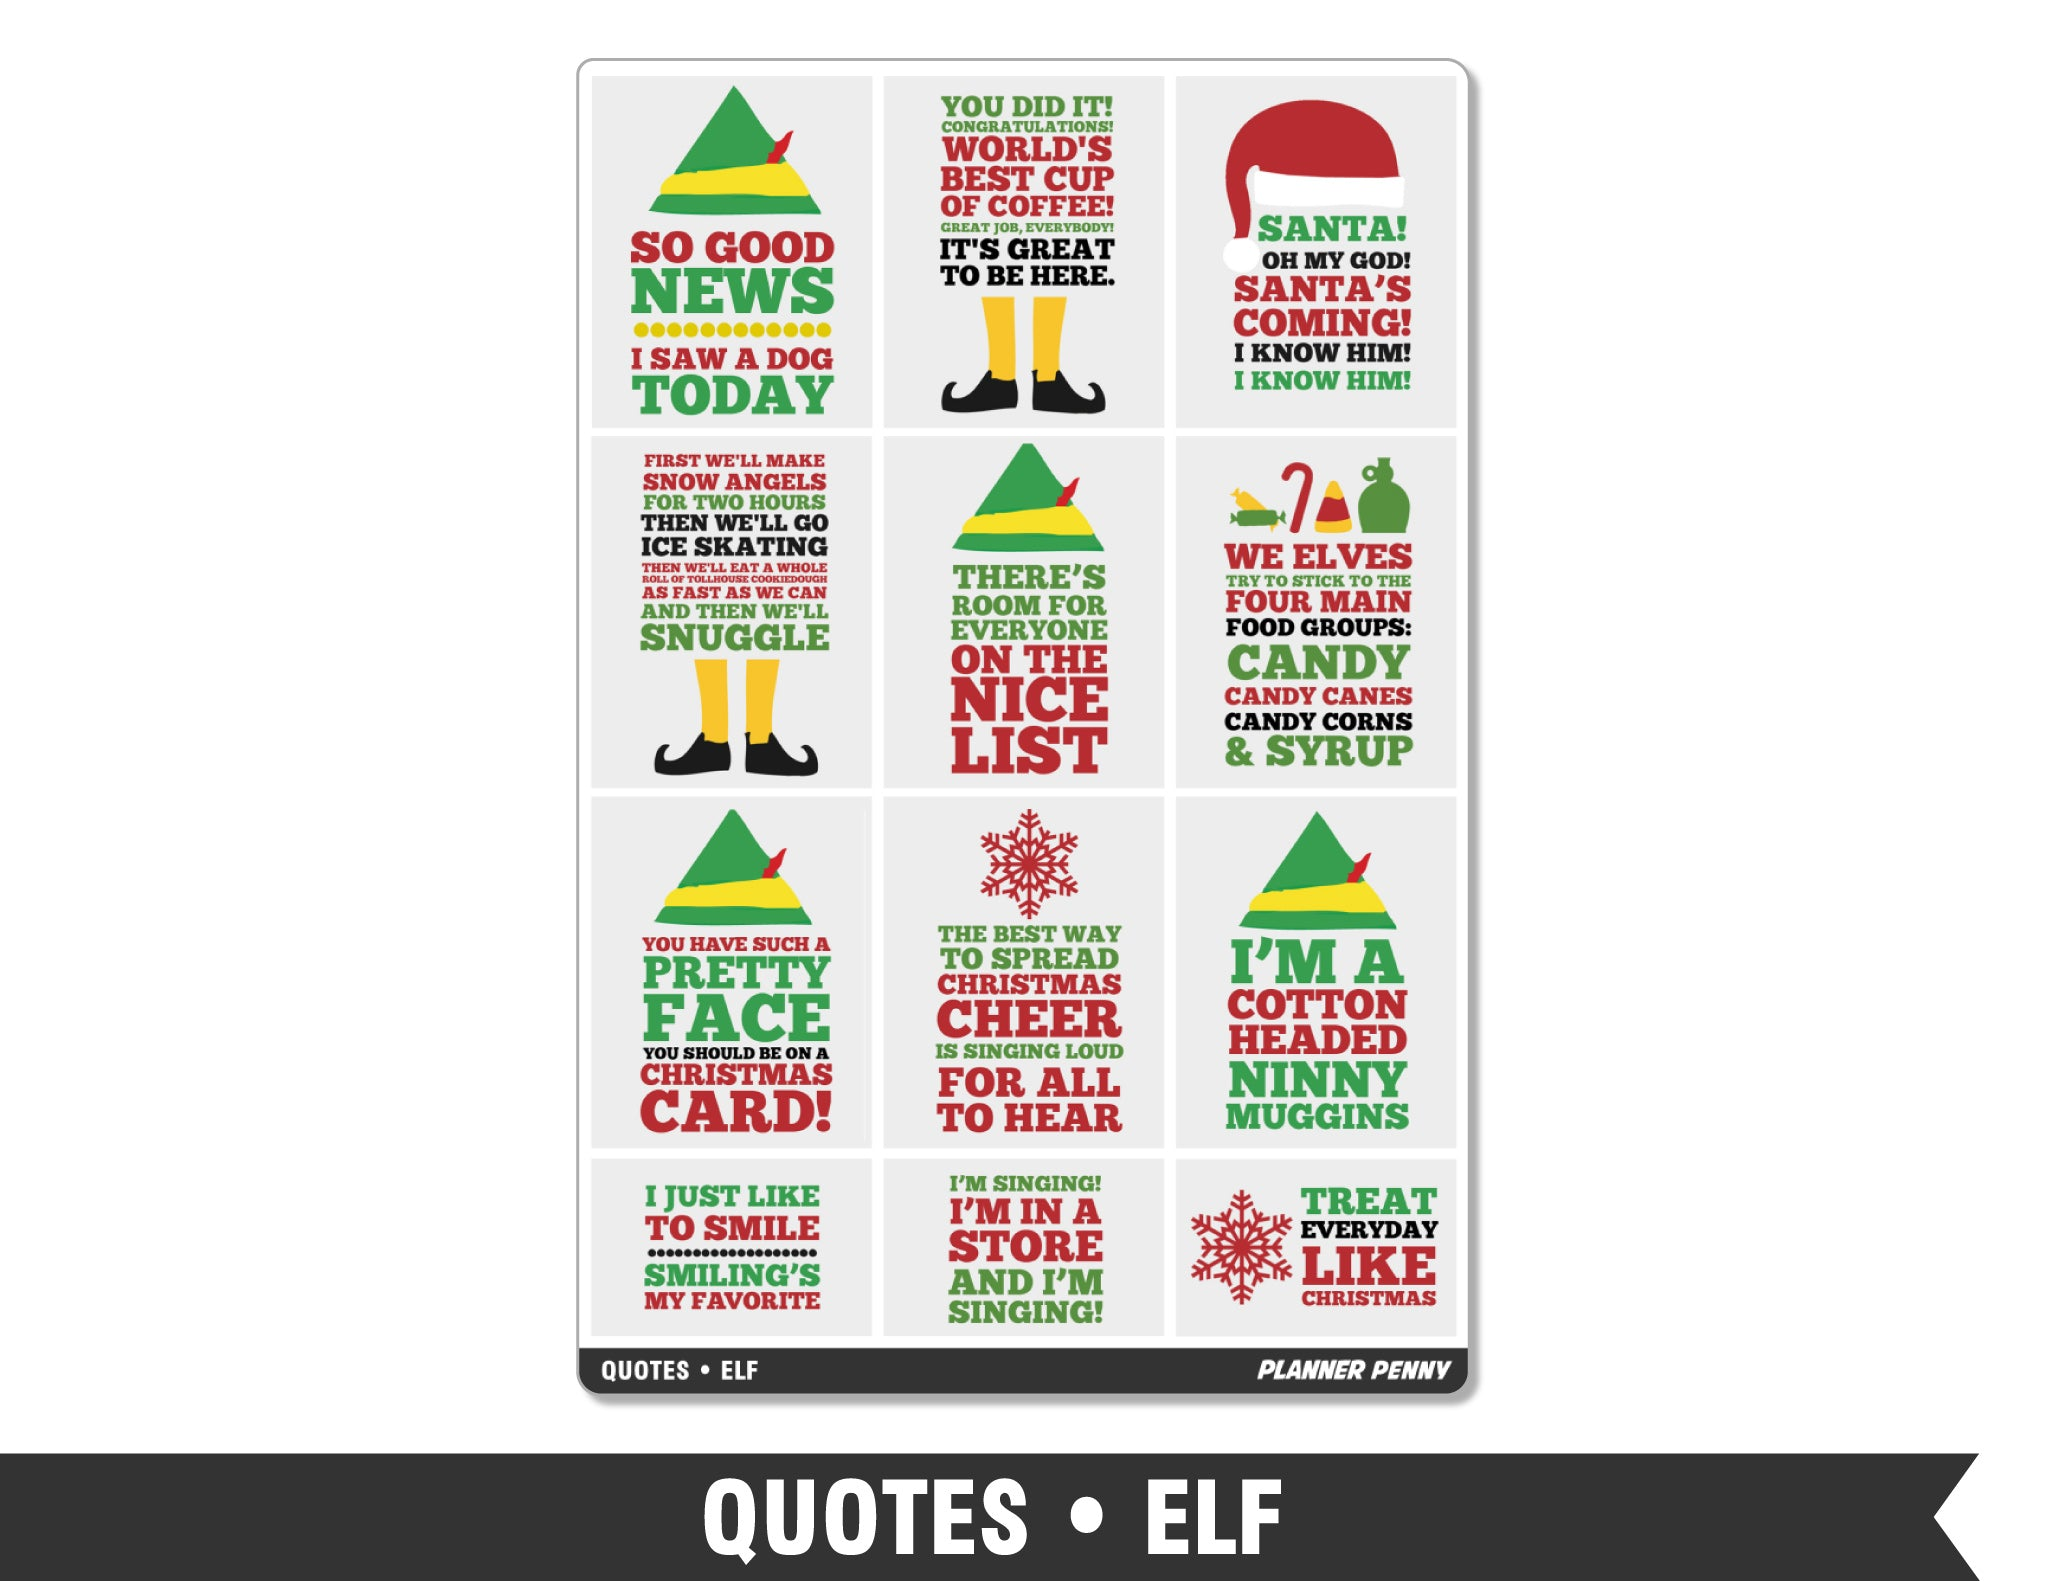 Quotes • Elf Full Box Planner Stickers - Planner Penny